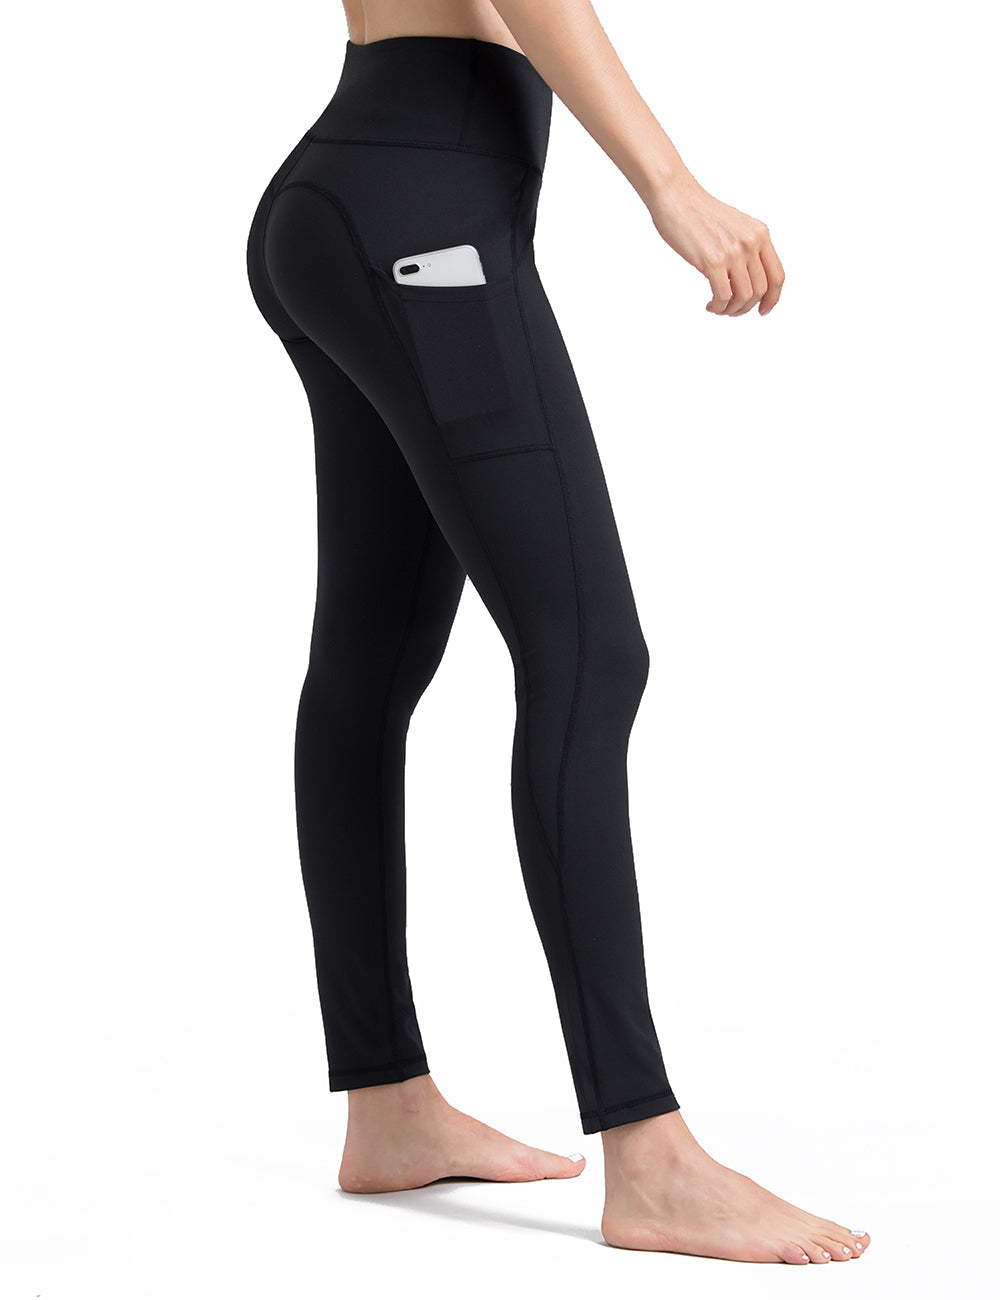 Black yoga pants with pockets - ALONGFIT